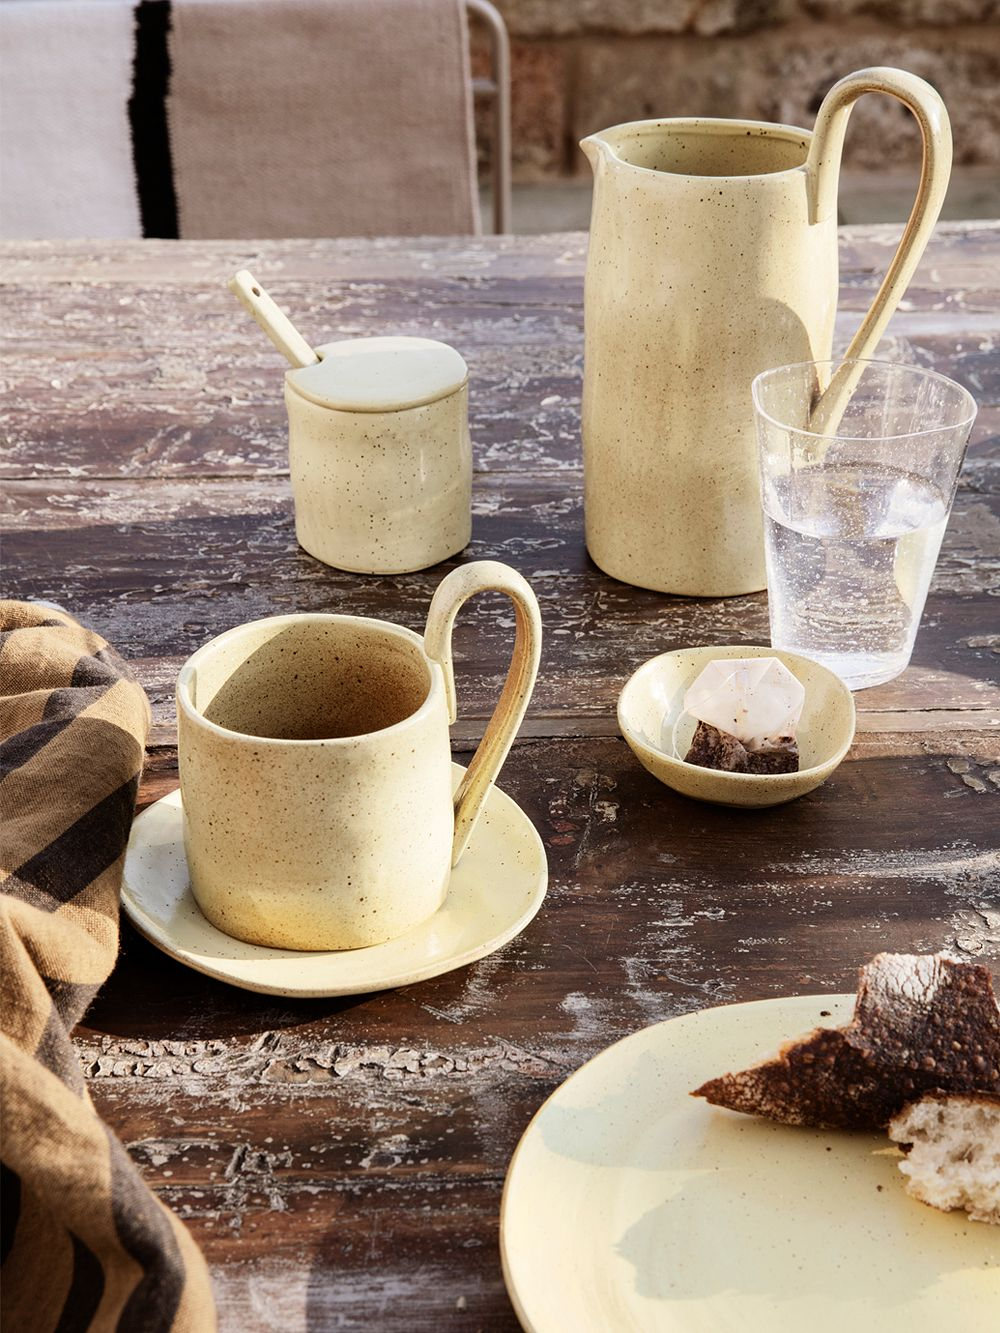 Ferm Living's Flow tableware on a table.